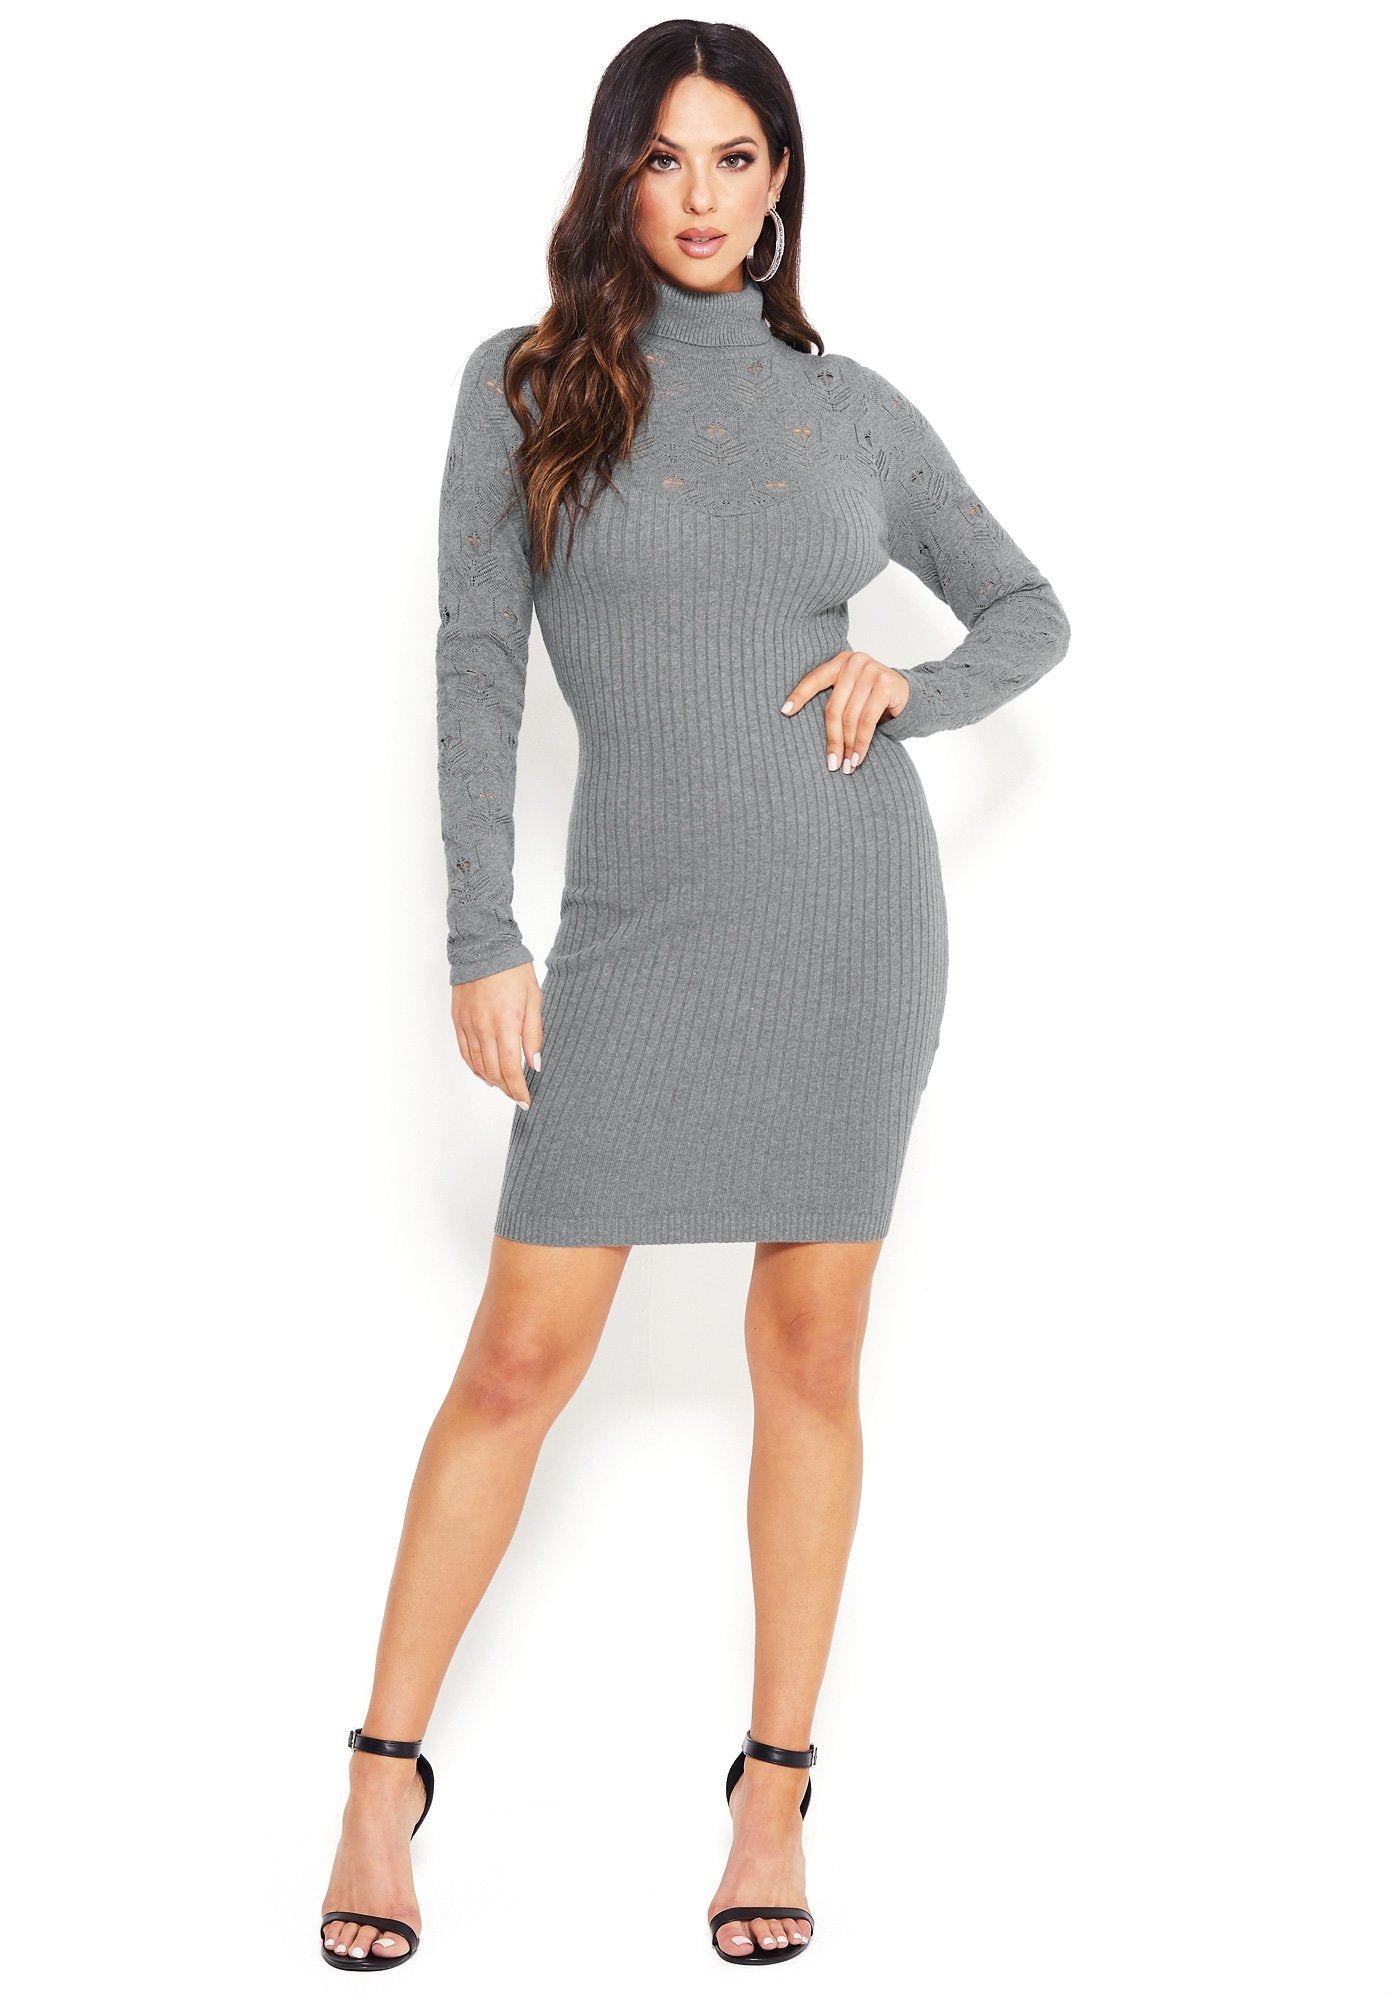 Image of Bebe Women's Lace Sweater Dress, Size XS in HEATHER GRAY